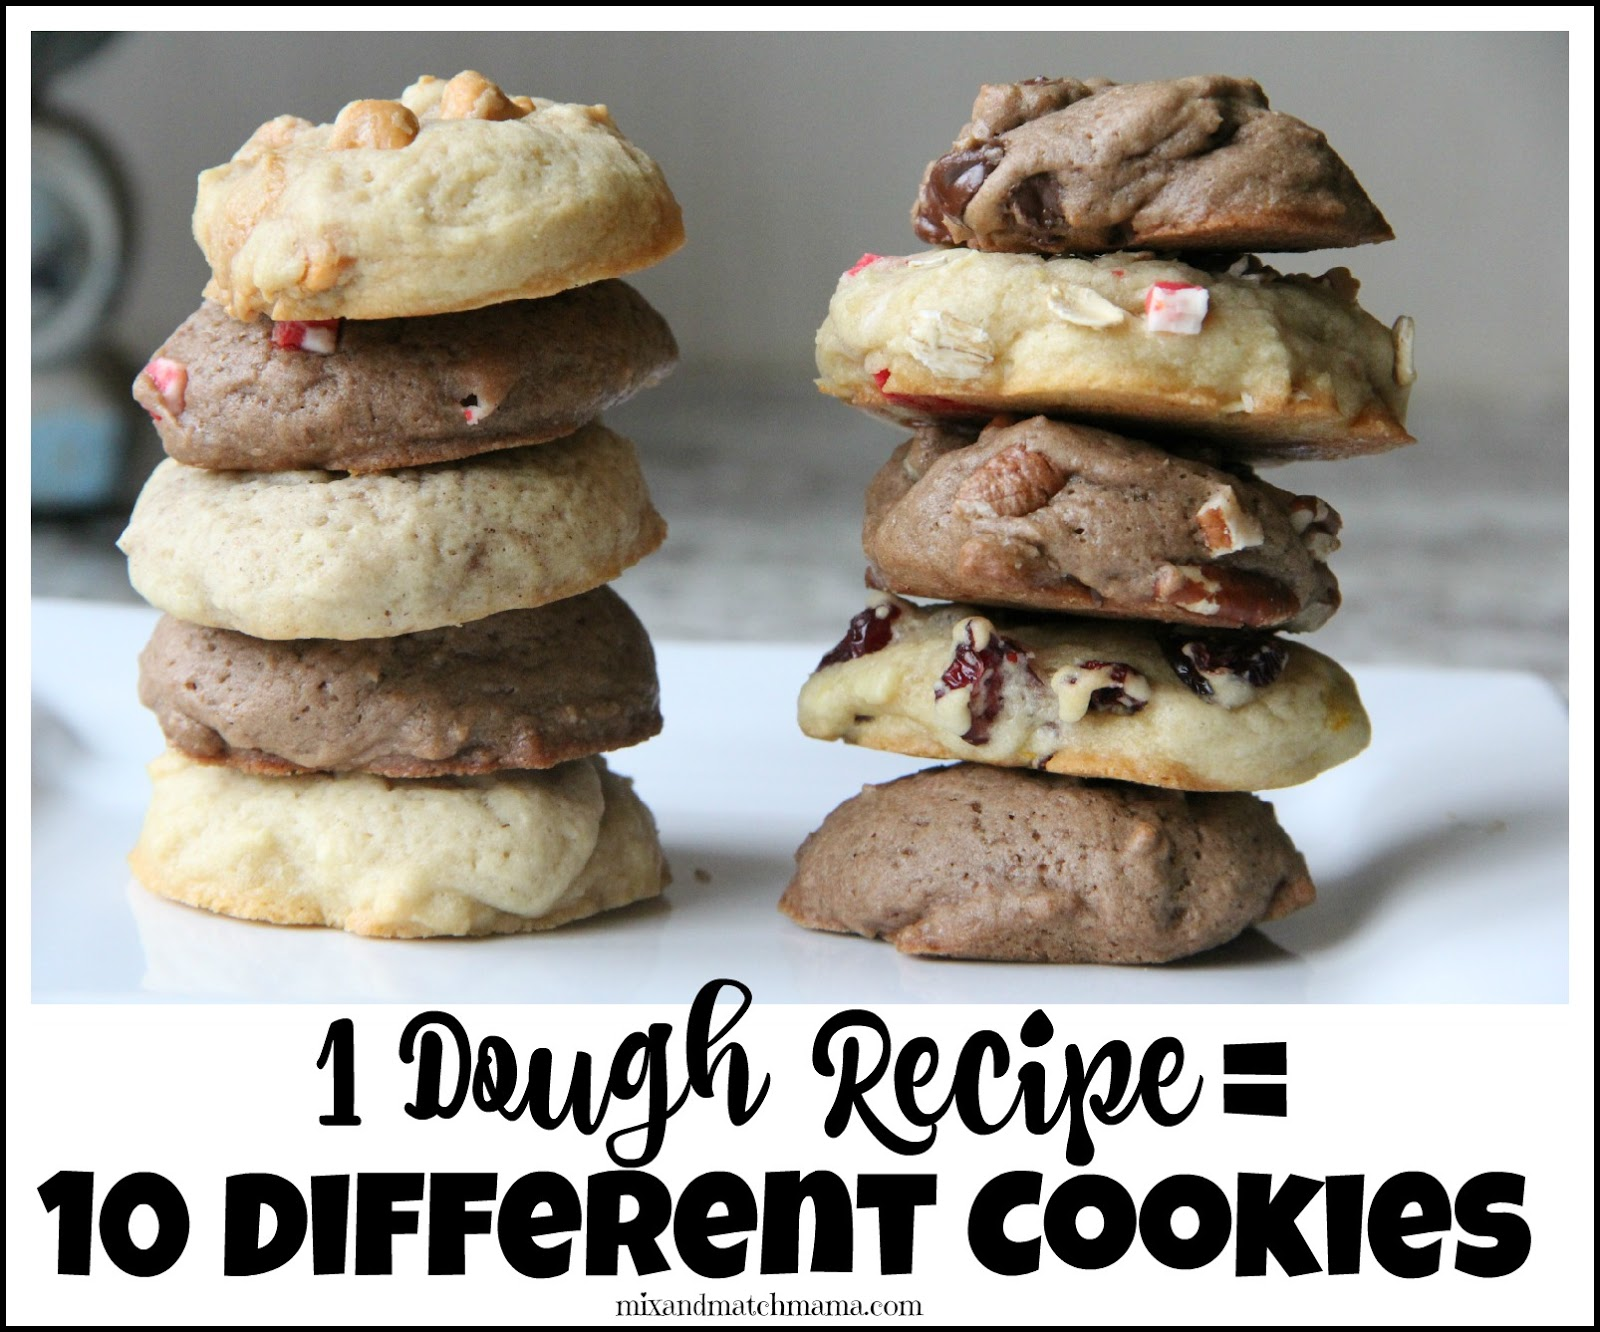 Recipes for different cookies